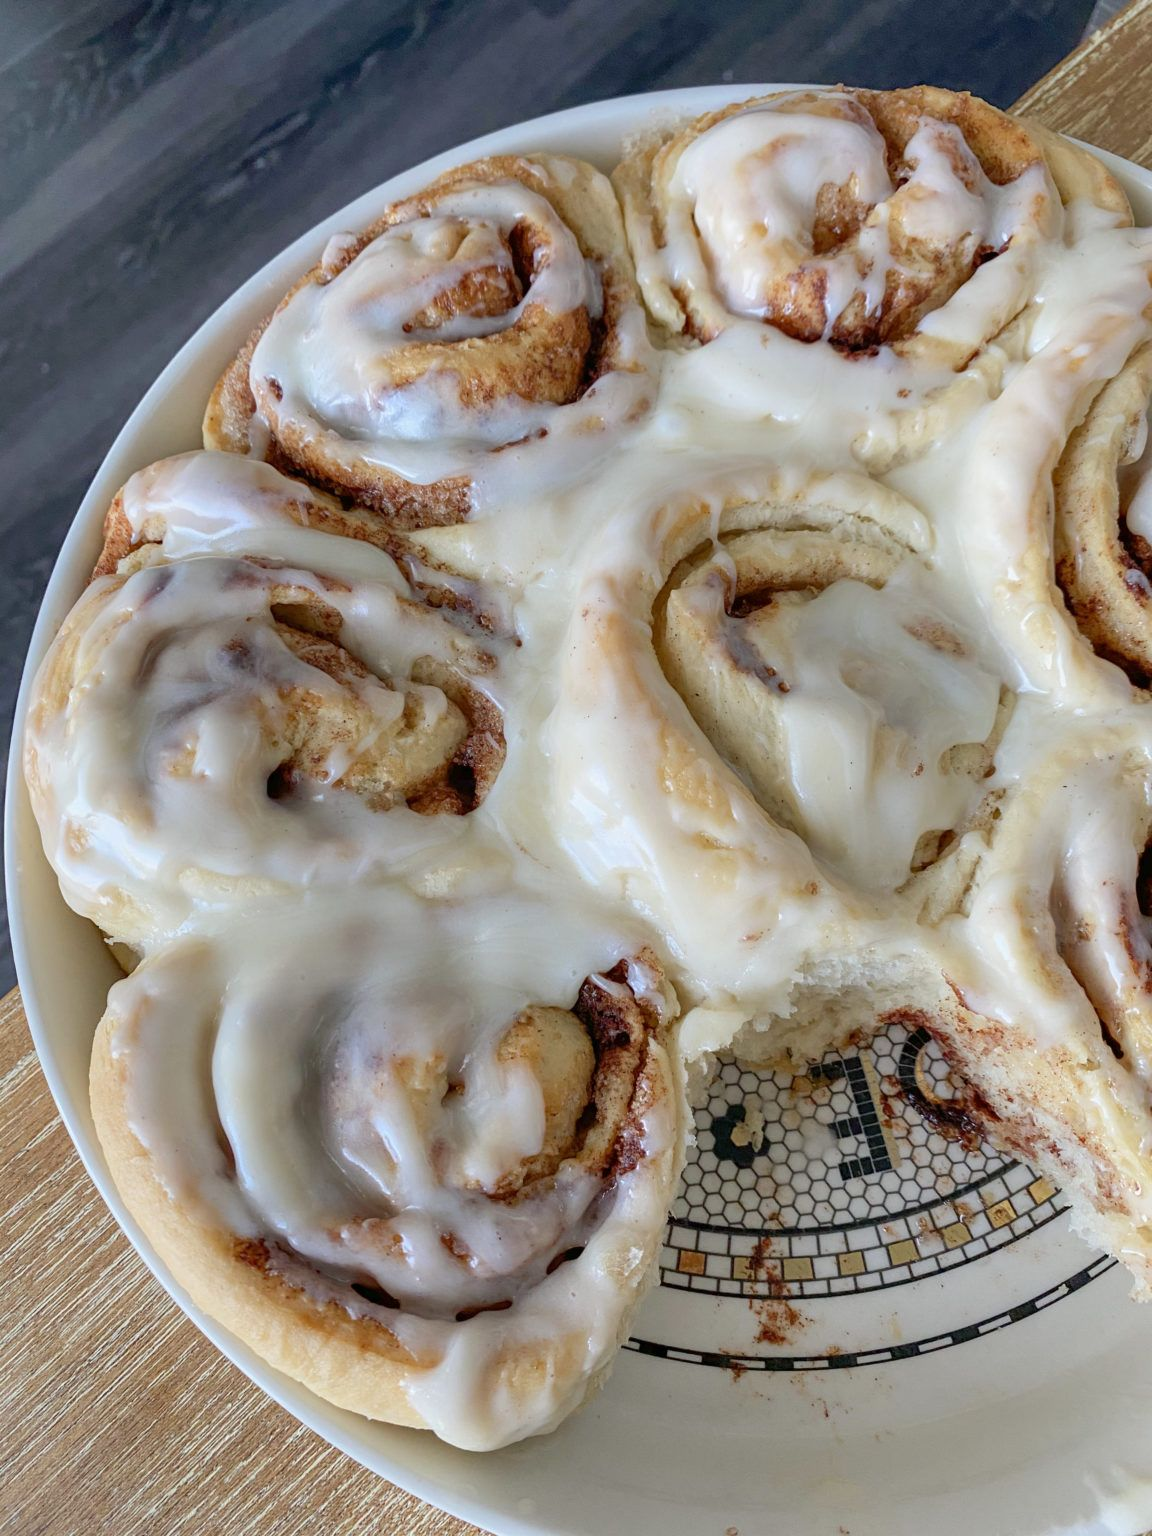 Easy Vegan Cinnamon Rolls With Cream Cheese Icing Peanut Butter And Jilly Recipe In 2020 Vegan Cinnamon Rolls Cinnamon Rolls Vegan Banana Bread Easy